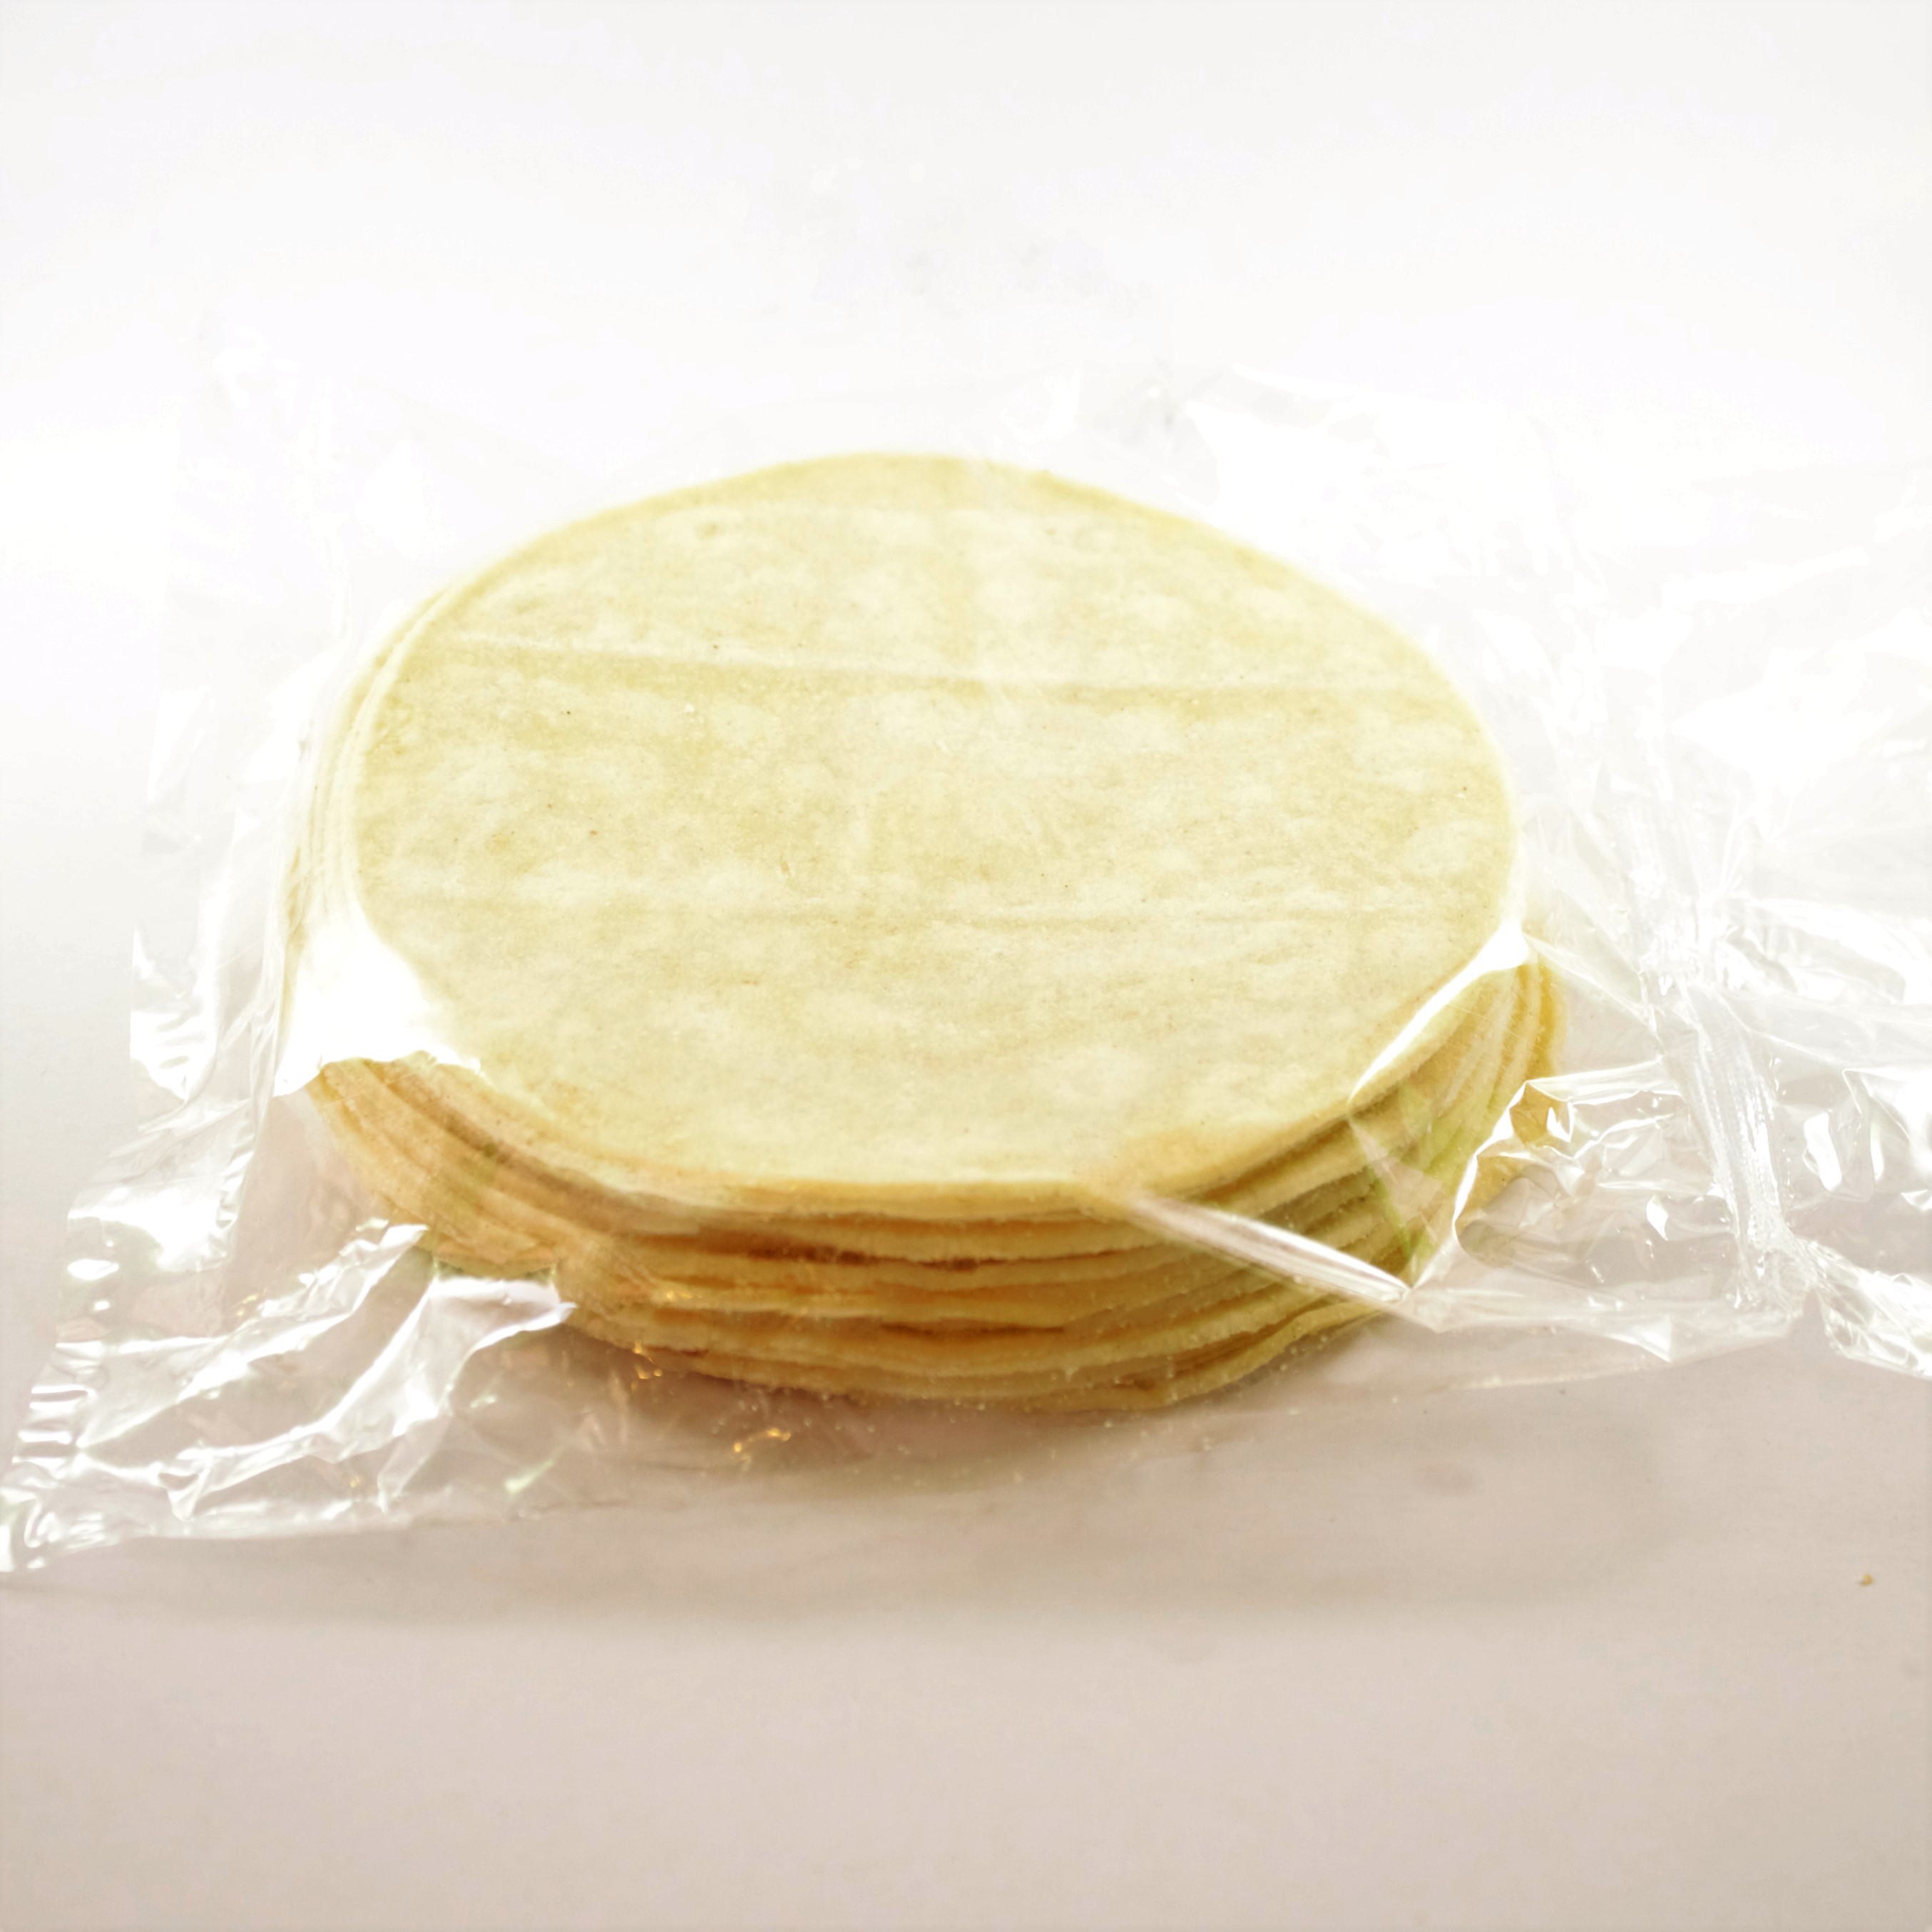 Corn Tortilla Gluten Free 15cm 20 Units Per Packet Azteca Mexican Food Products Online Store